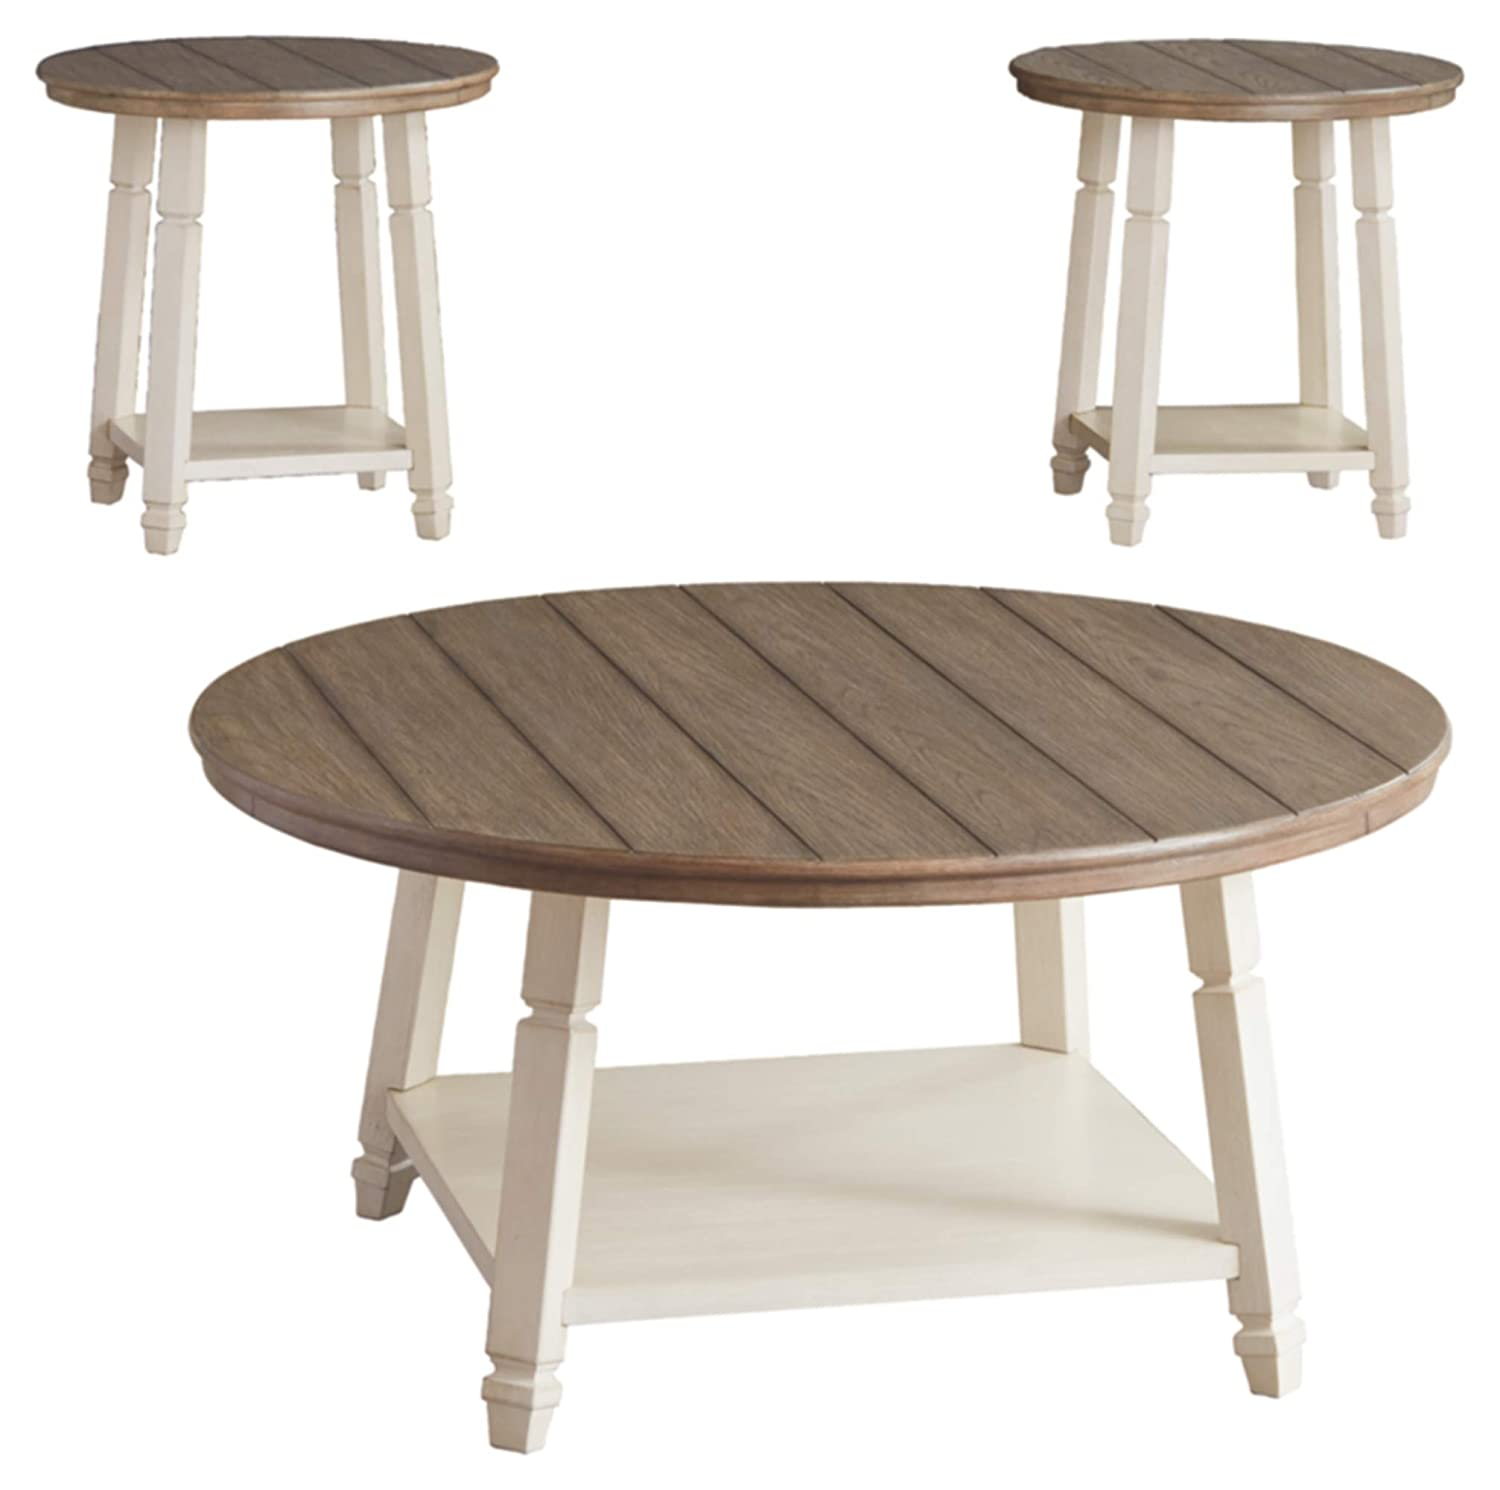 Round Coffee Table With Chairs.Ashley Furniture Signature Design Bolanbrook Occasional Table Set Set Of 3 Farmhouse Antique White